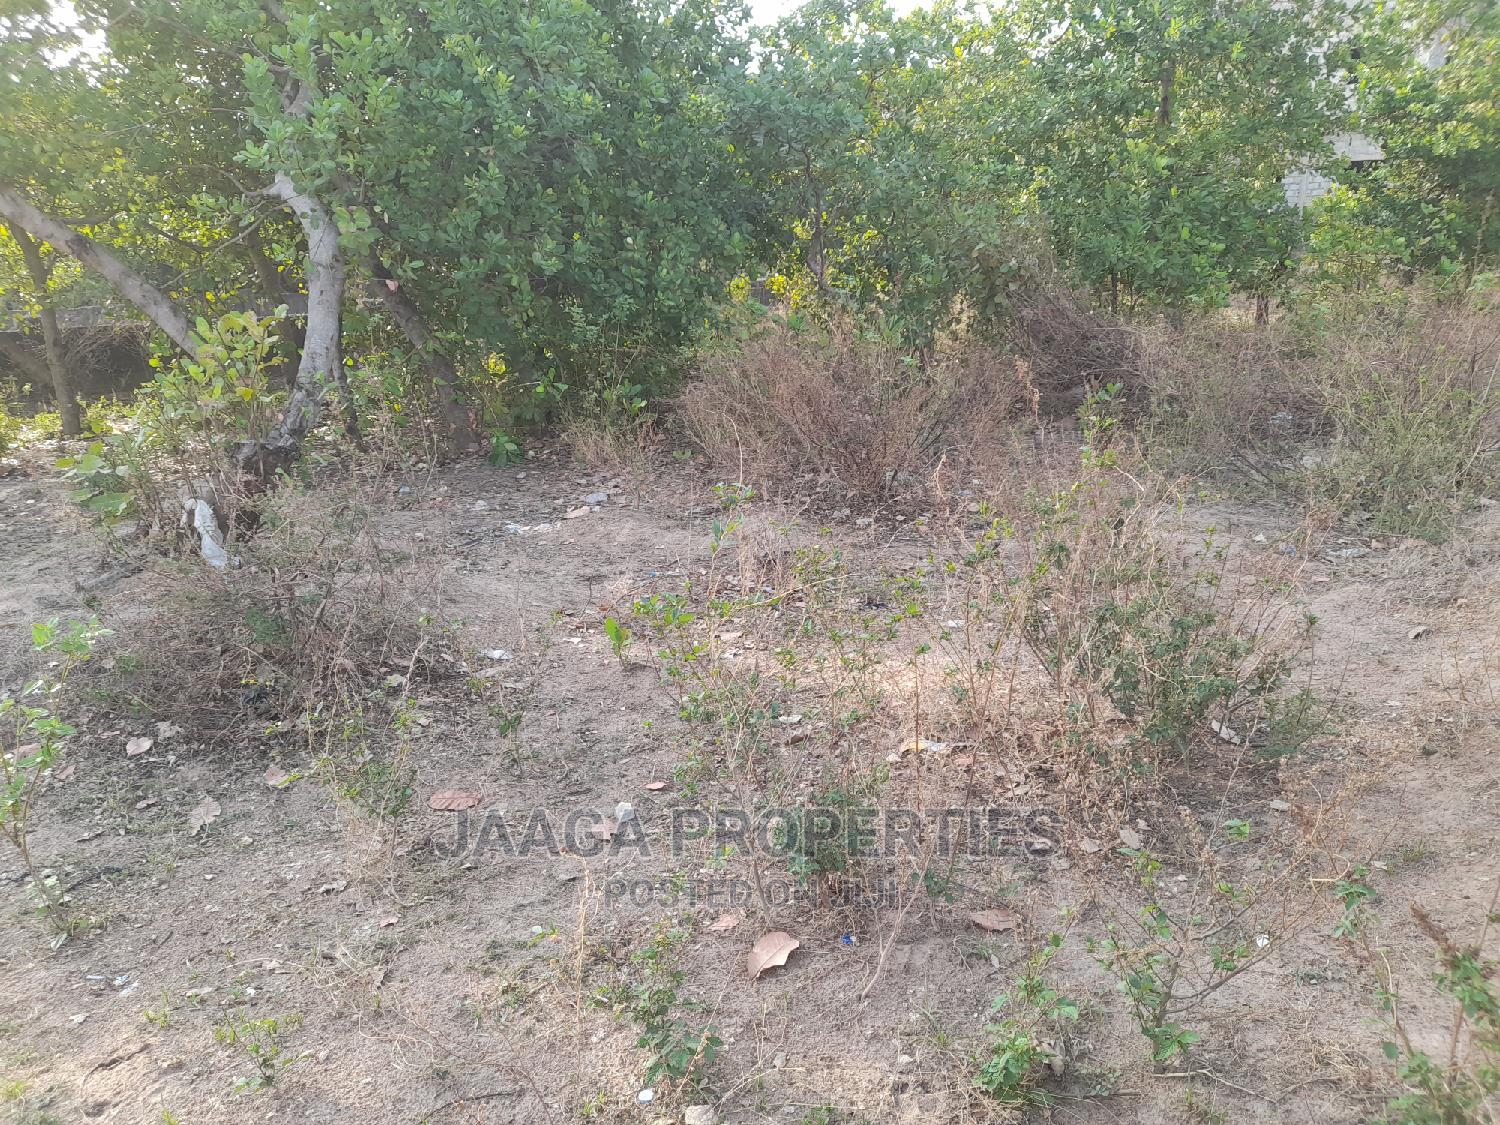 Distress Flat Residential Plot for Sale in Lifecamp